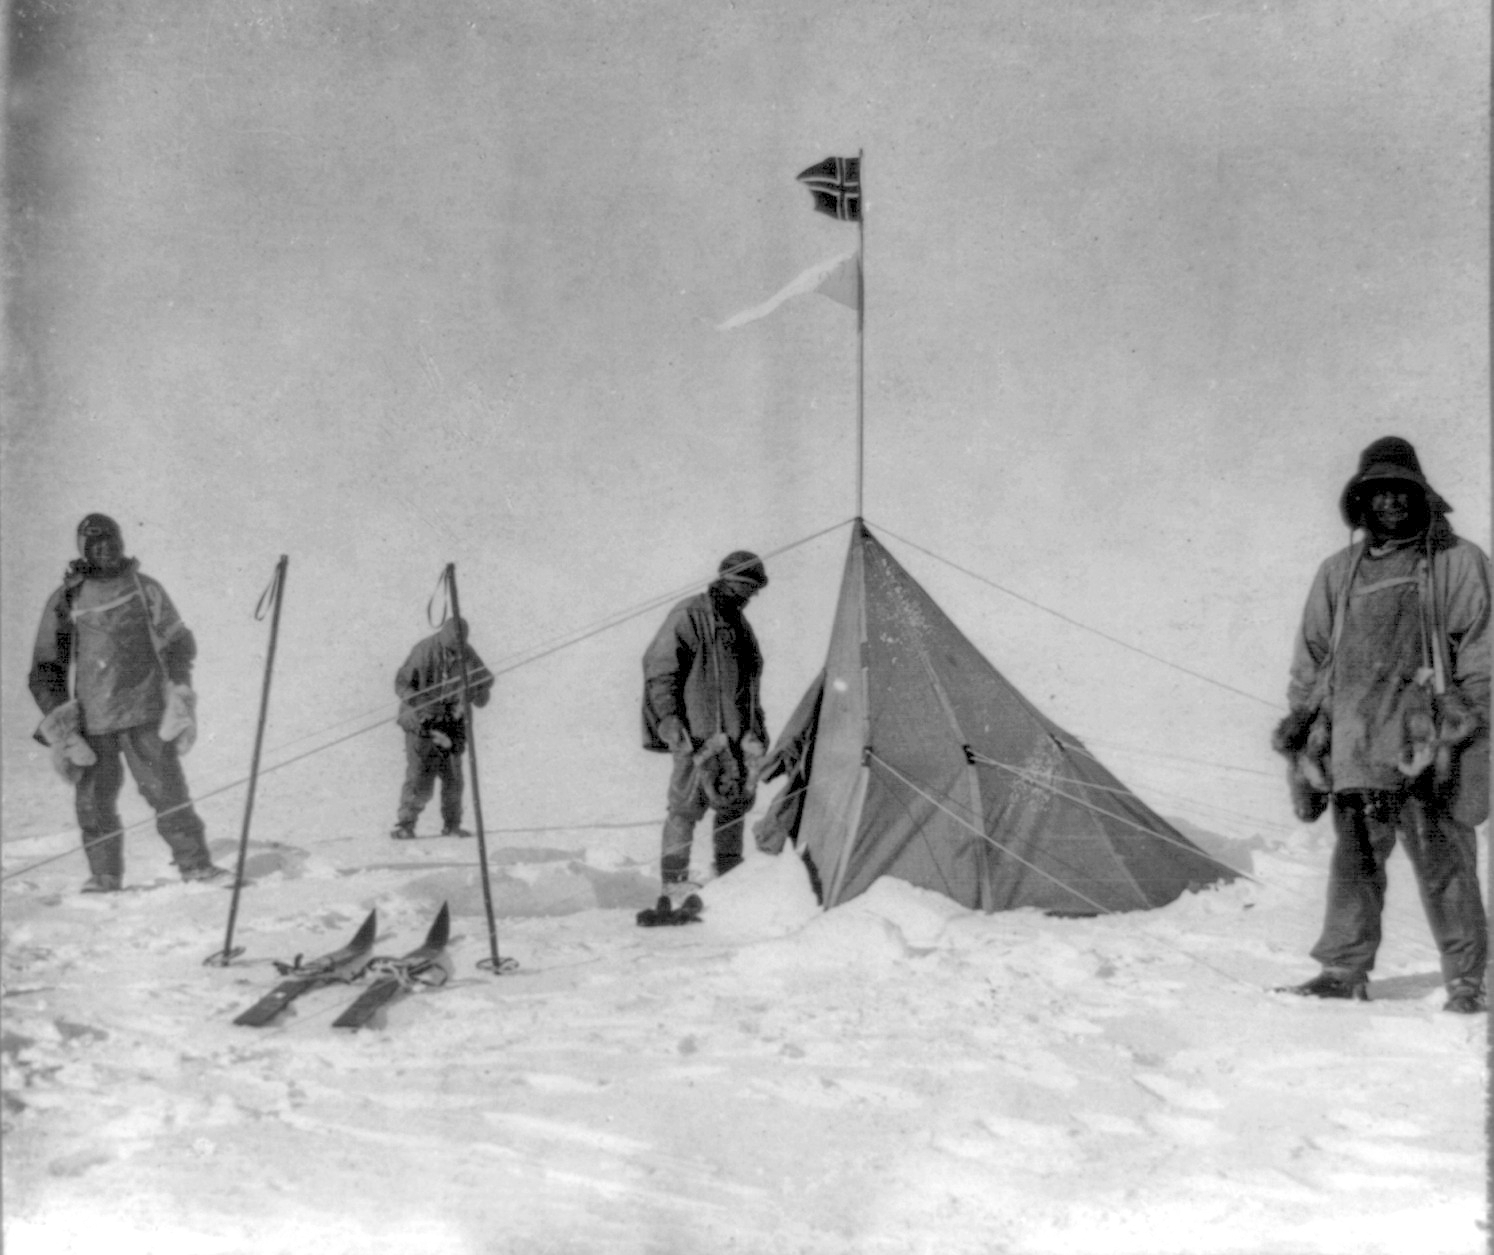 Scott and team see Norwegian flag at the South Pole